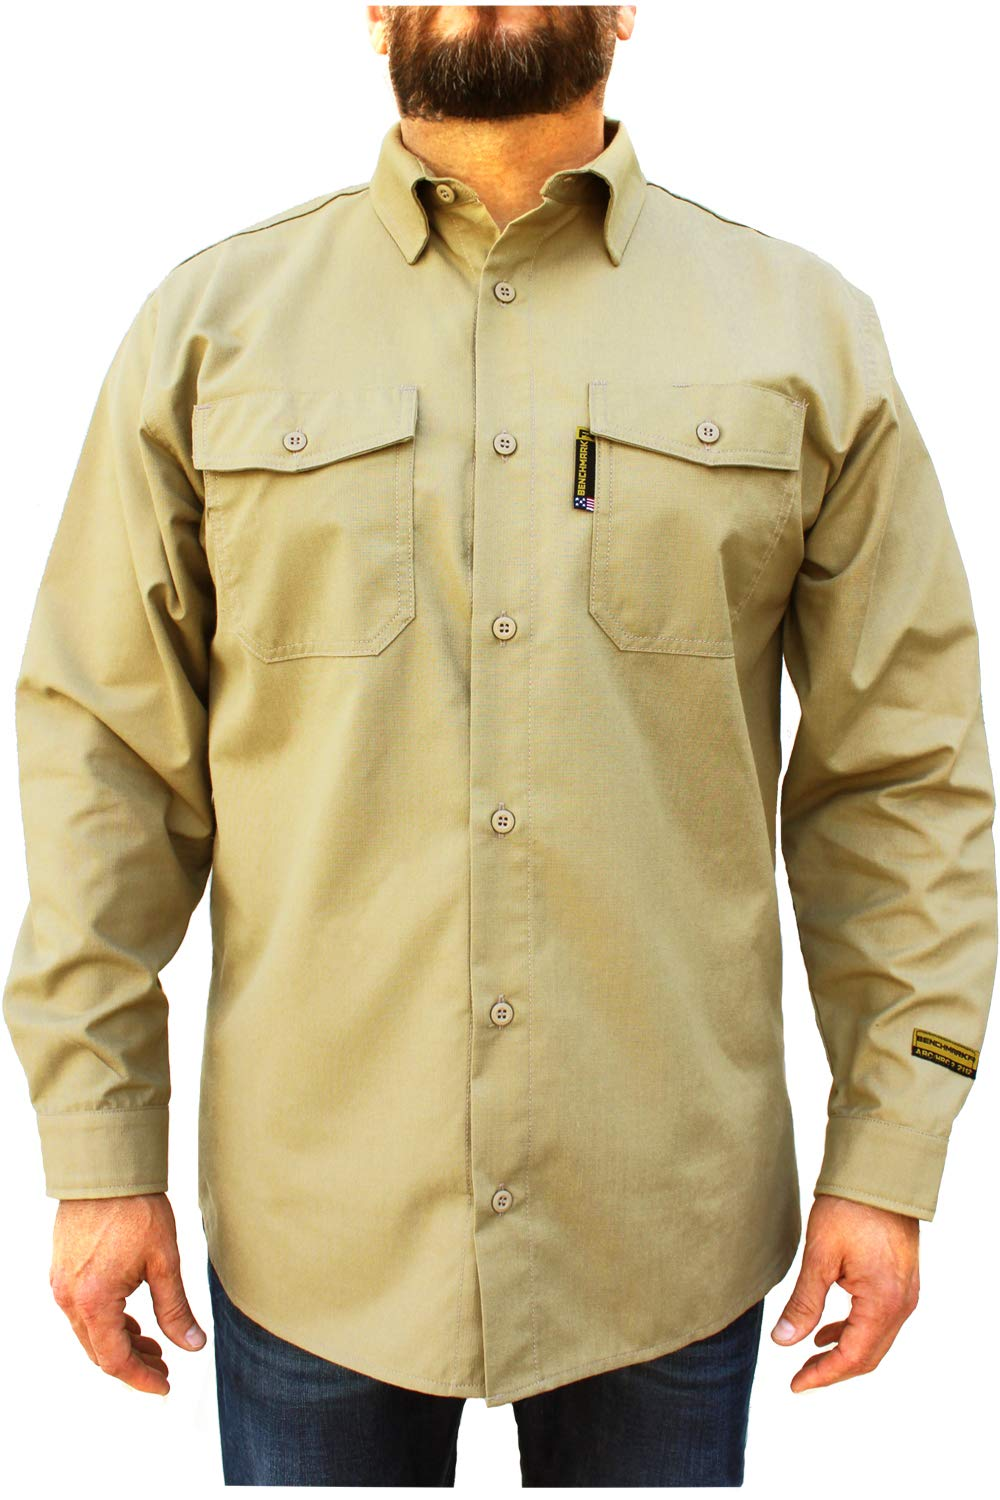 Benchmark FR Silver Bullet, 5.1 oz Ultra Lightweight FR Shirt, NPFA 2112 & CAT 2, Moisture Wicking, Men's FRC with 9 Cal rating, Made in USA, Advanced FR Materials, Beige, Large by Benchmark FR (Image #2)